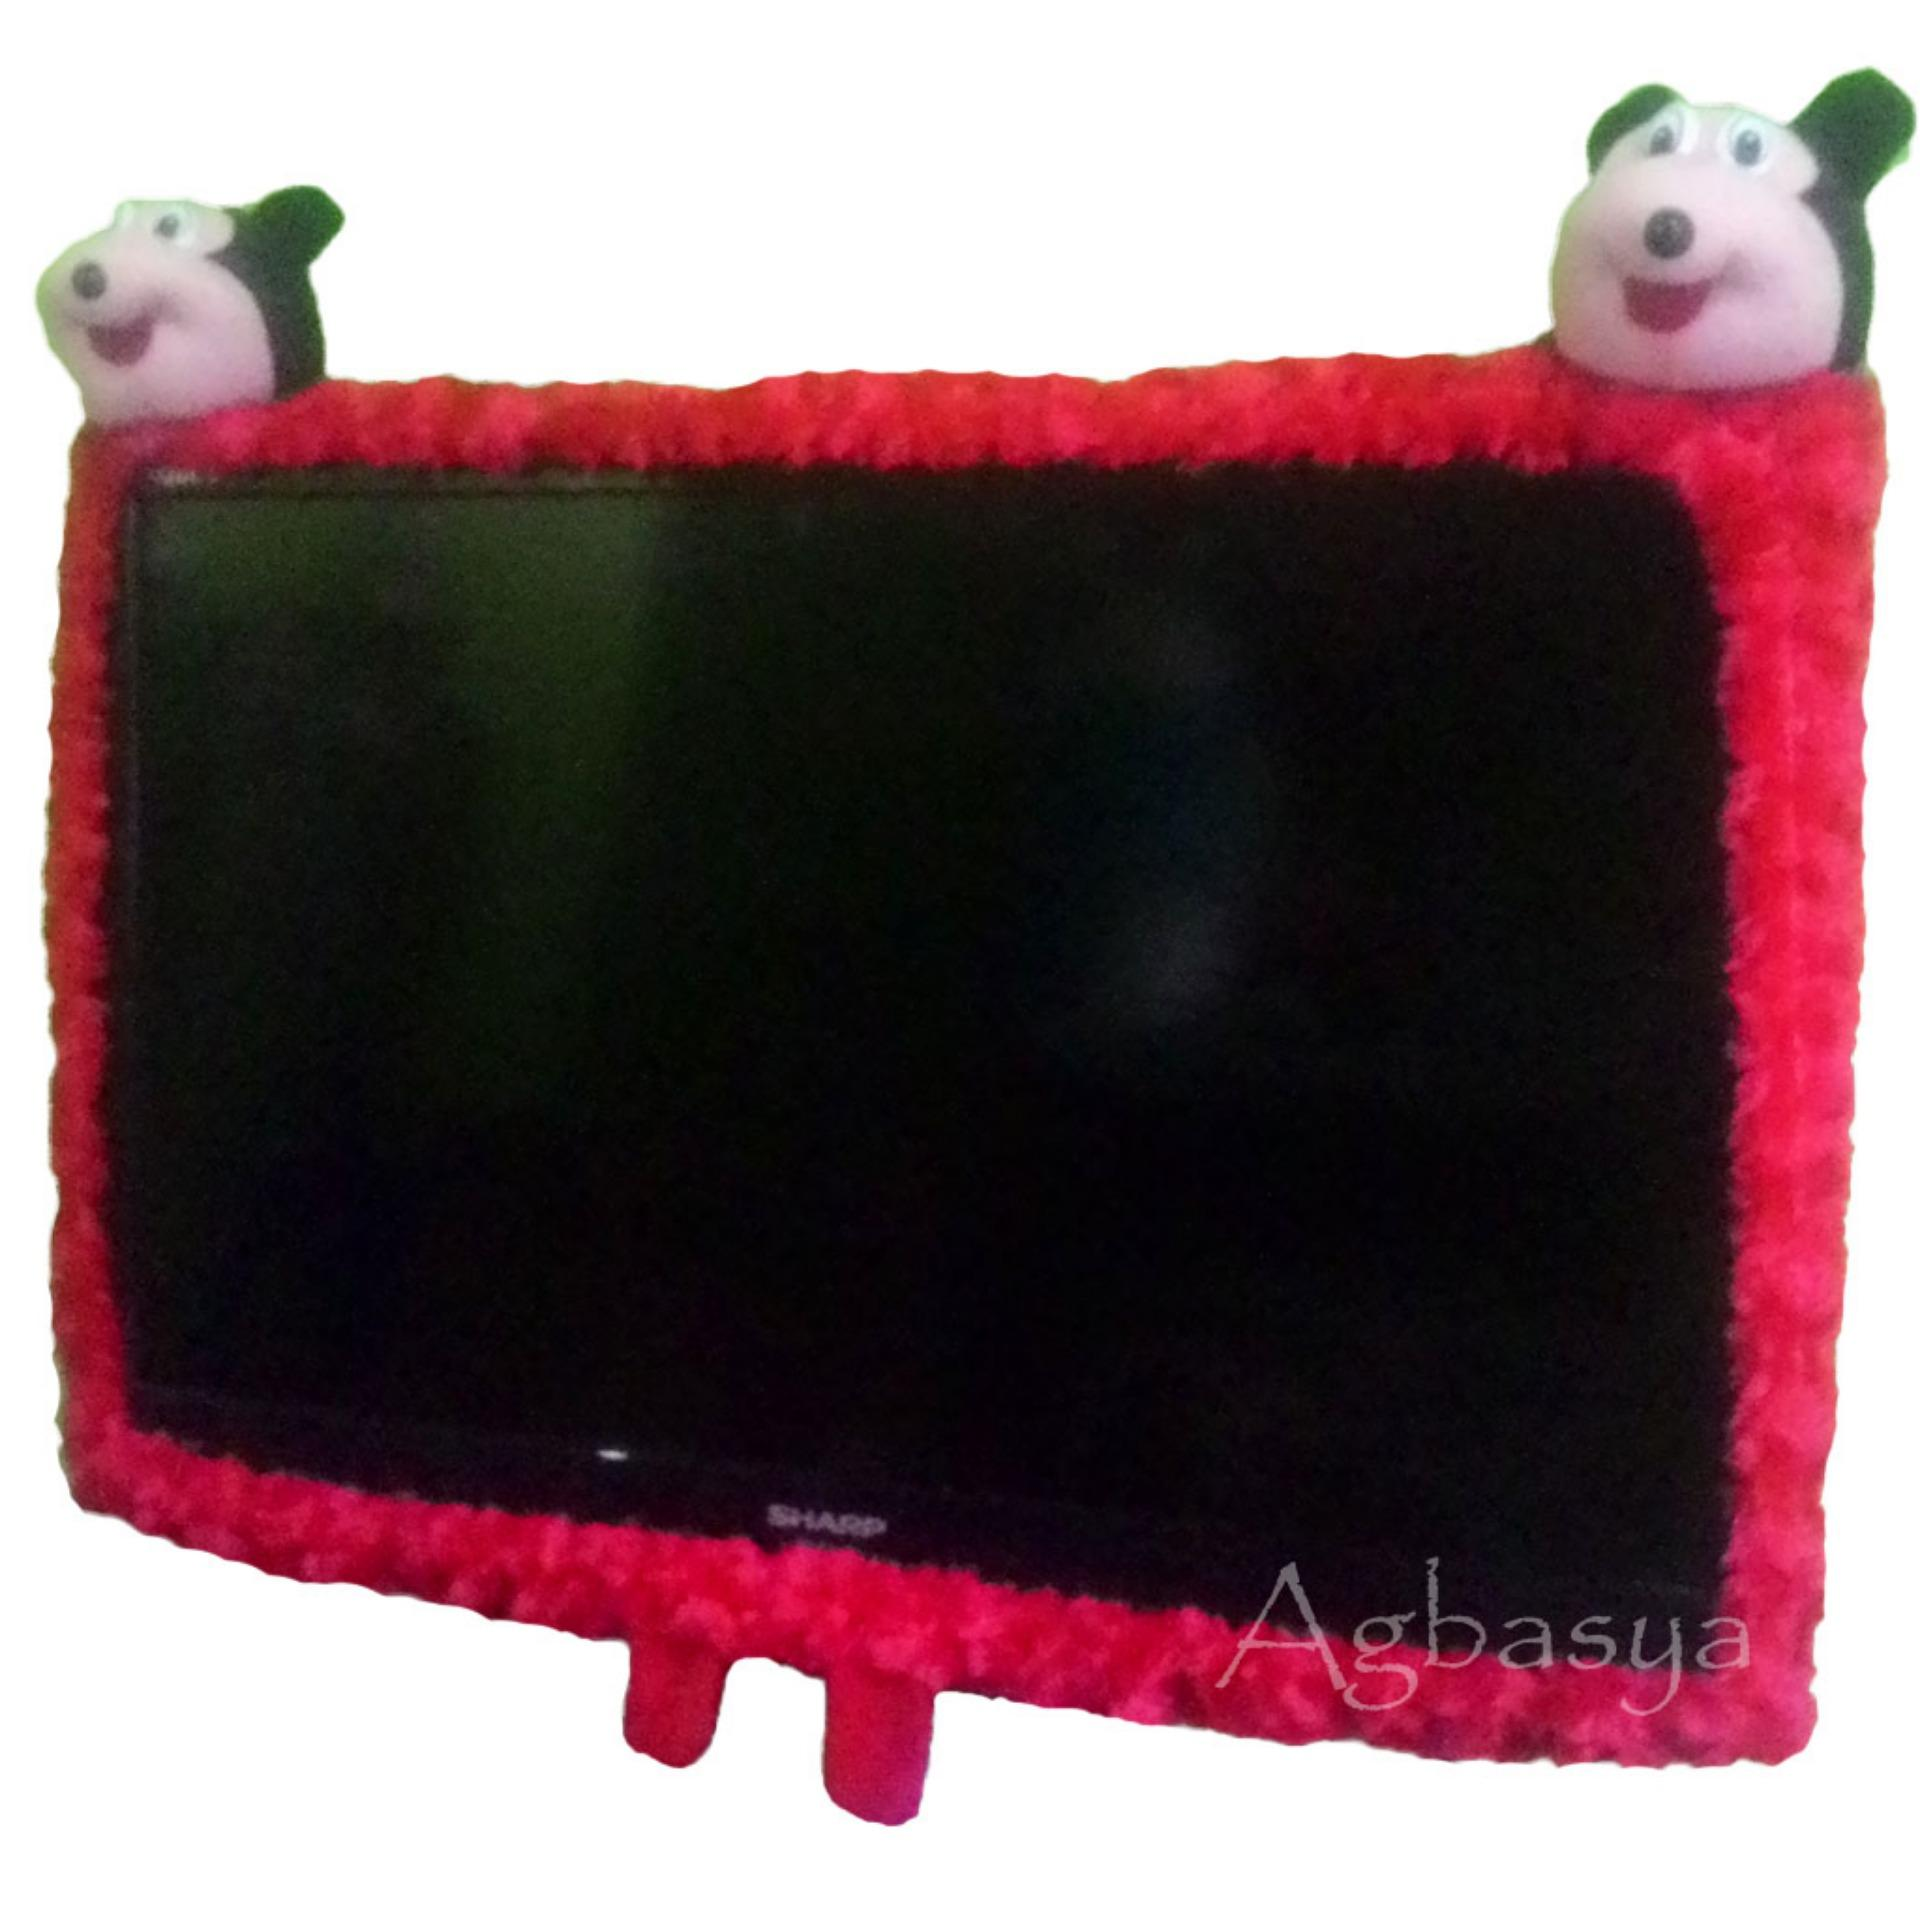 Sarung / Cover / Bando TV LED Model 2 Kepala Boneka Karakter